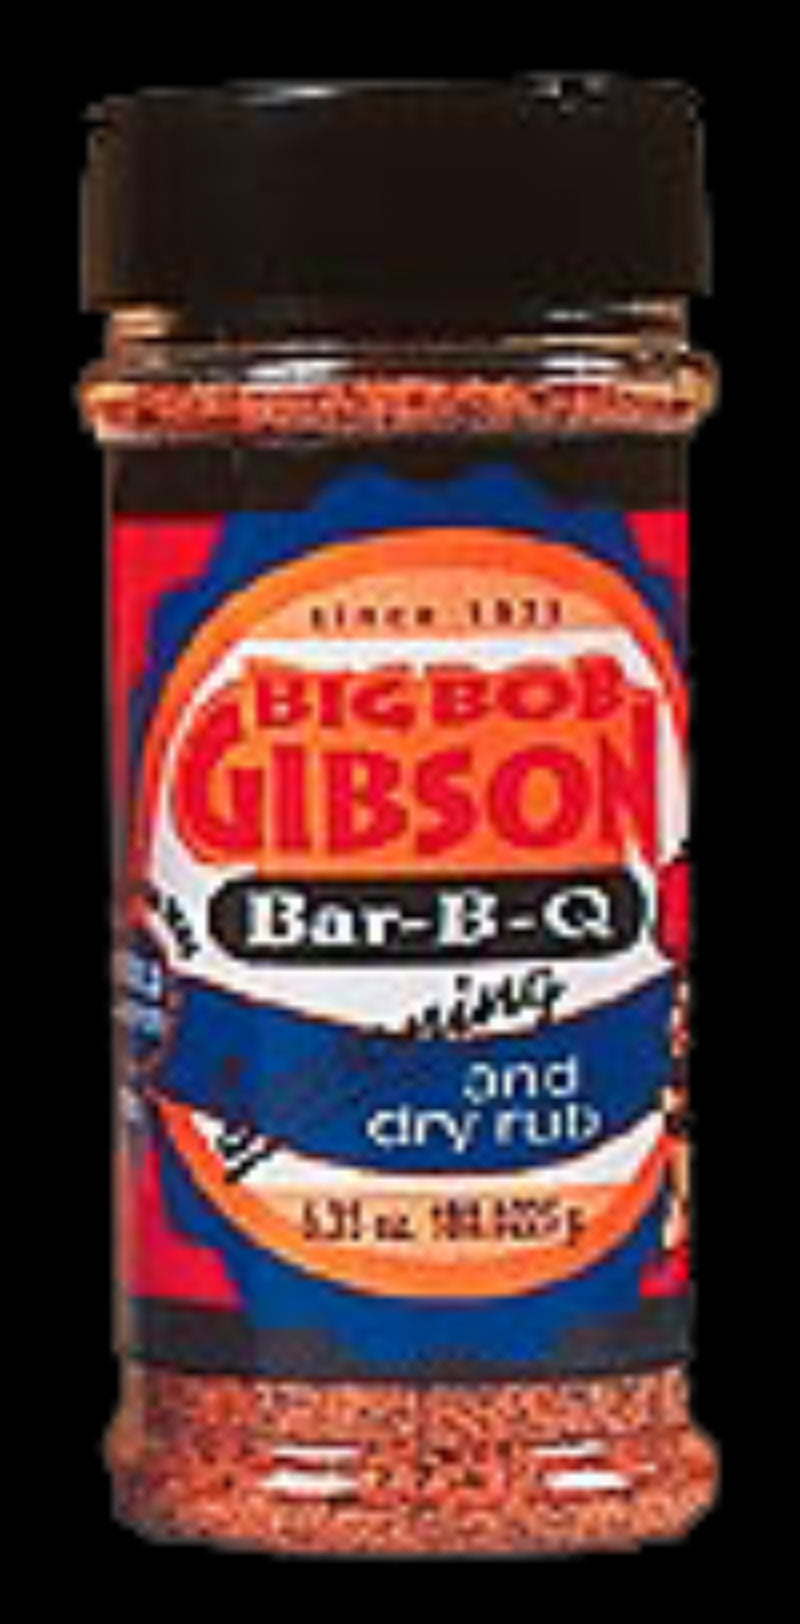 Apply liberally to any meat, poultry, or fish thirty minutes before cooking and you too can have blue ribbon results